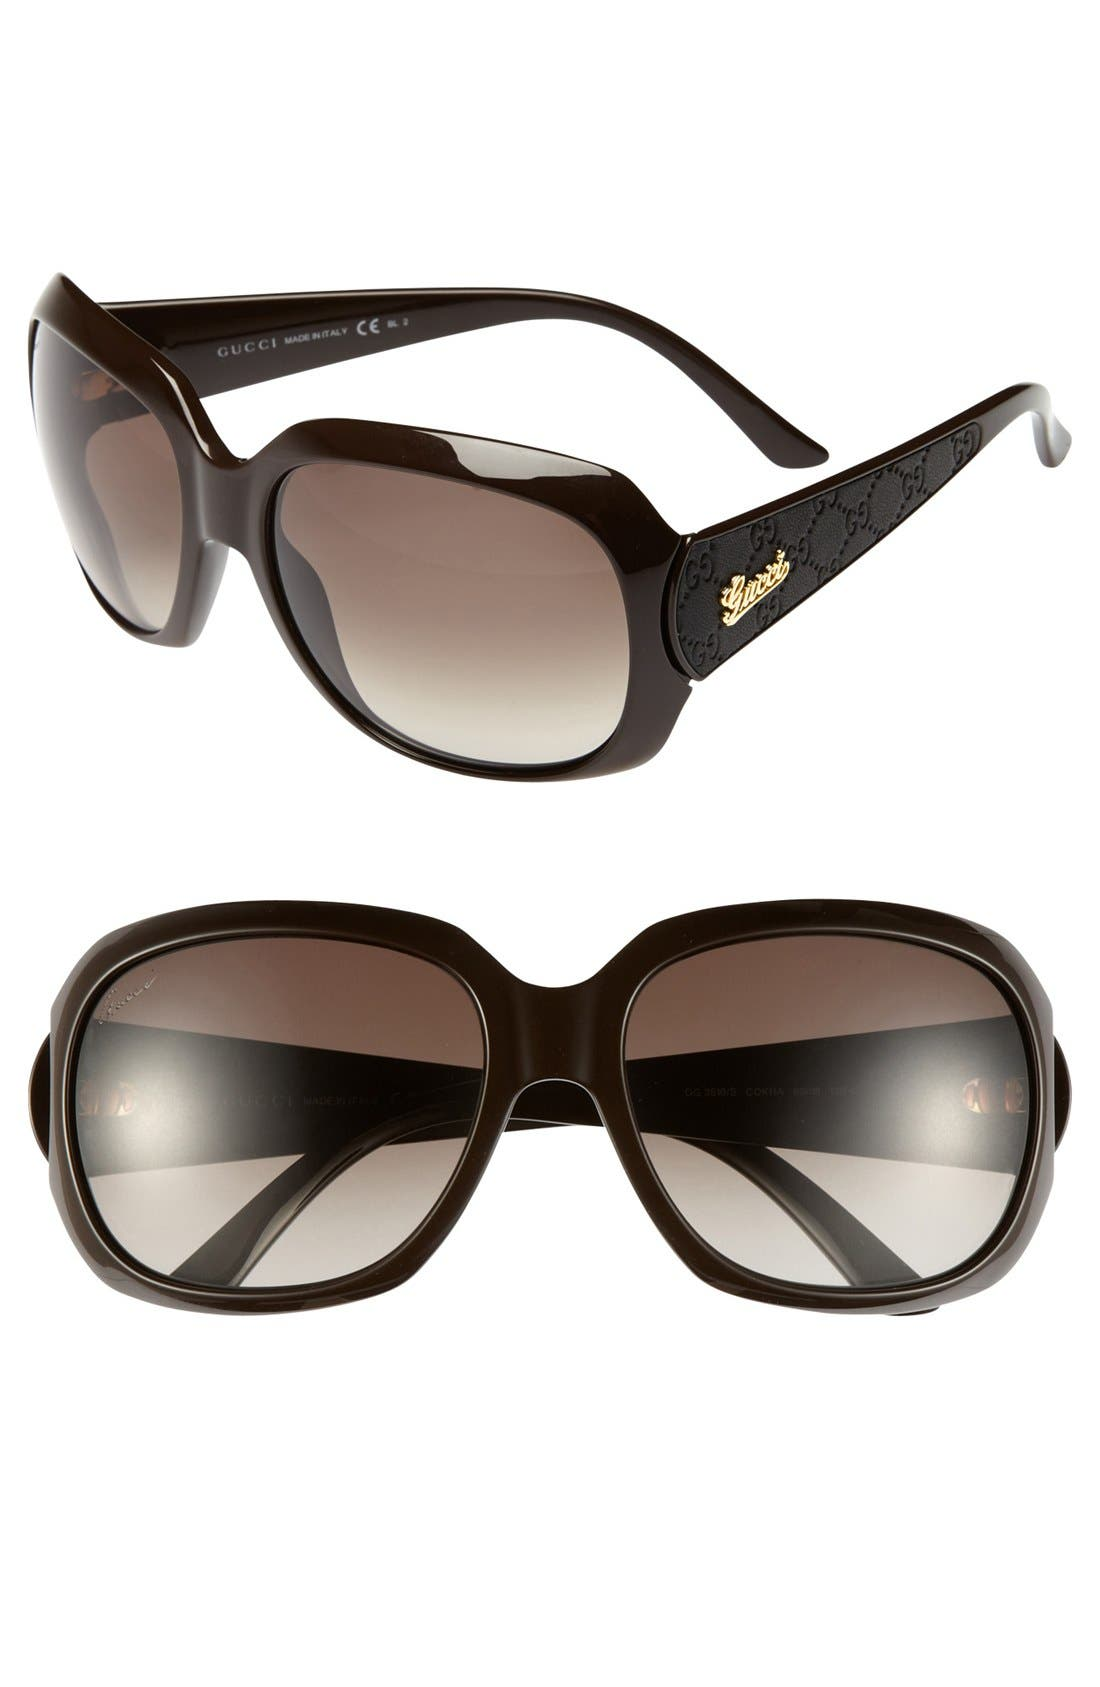 Alternate Image 1 Selected - Gucci 60mm Sunglasses (Online Only)